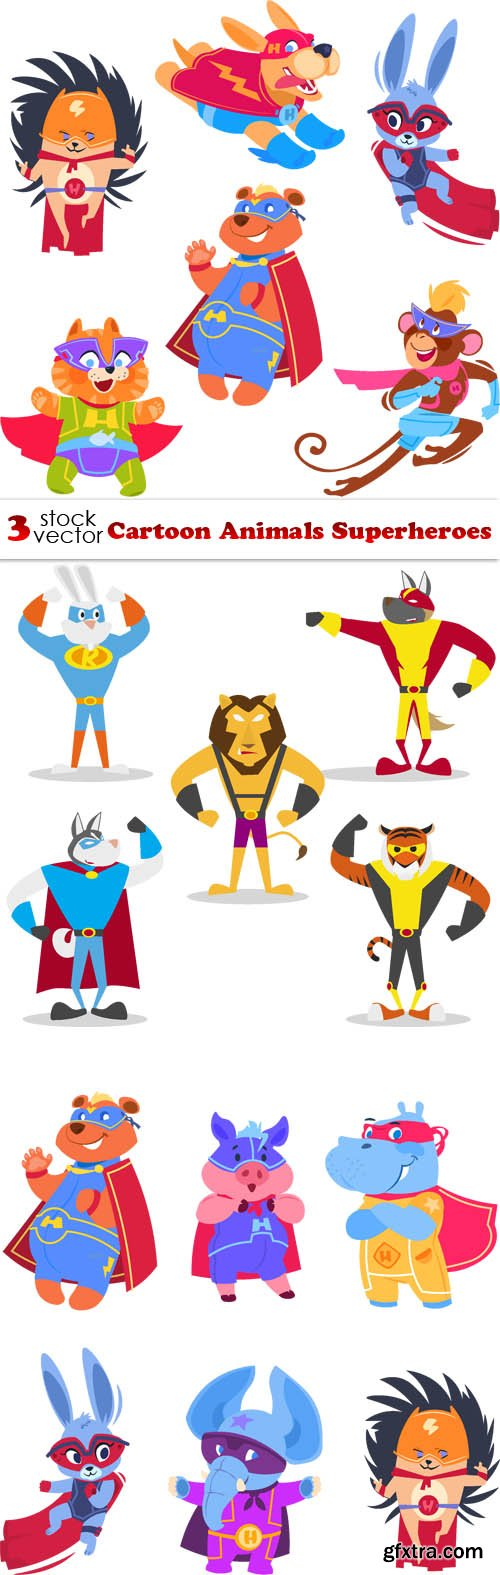 Vectors - Cartoon Animals Superheroes